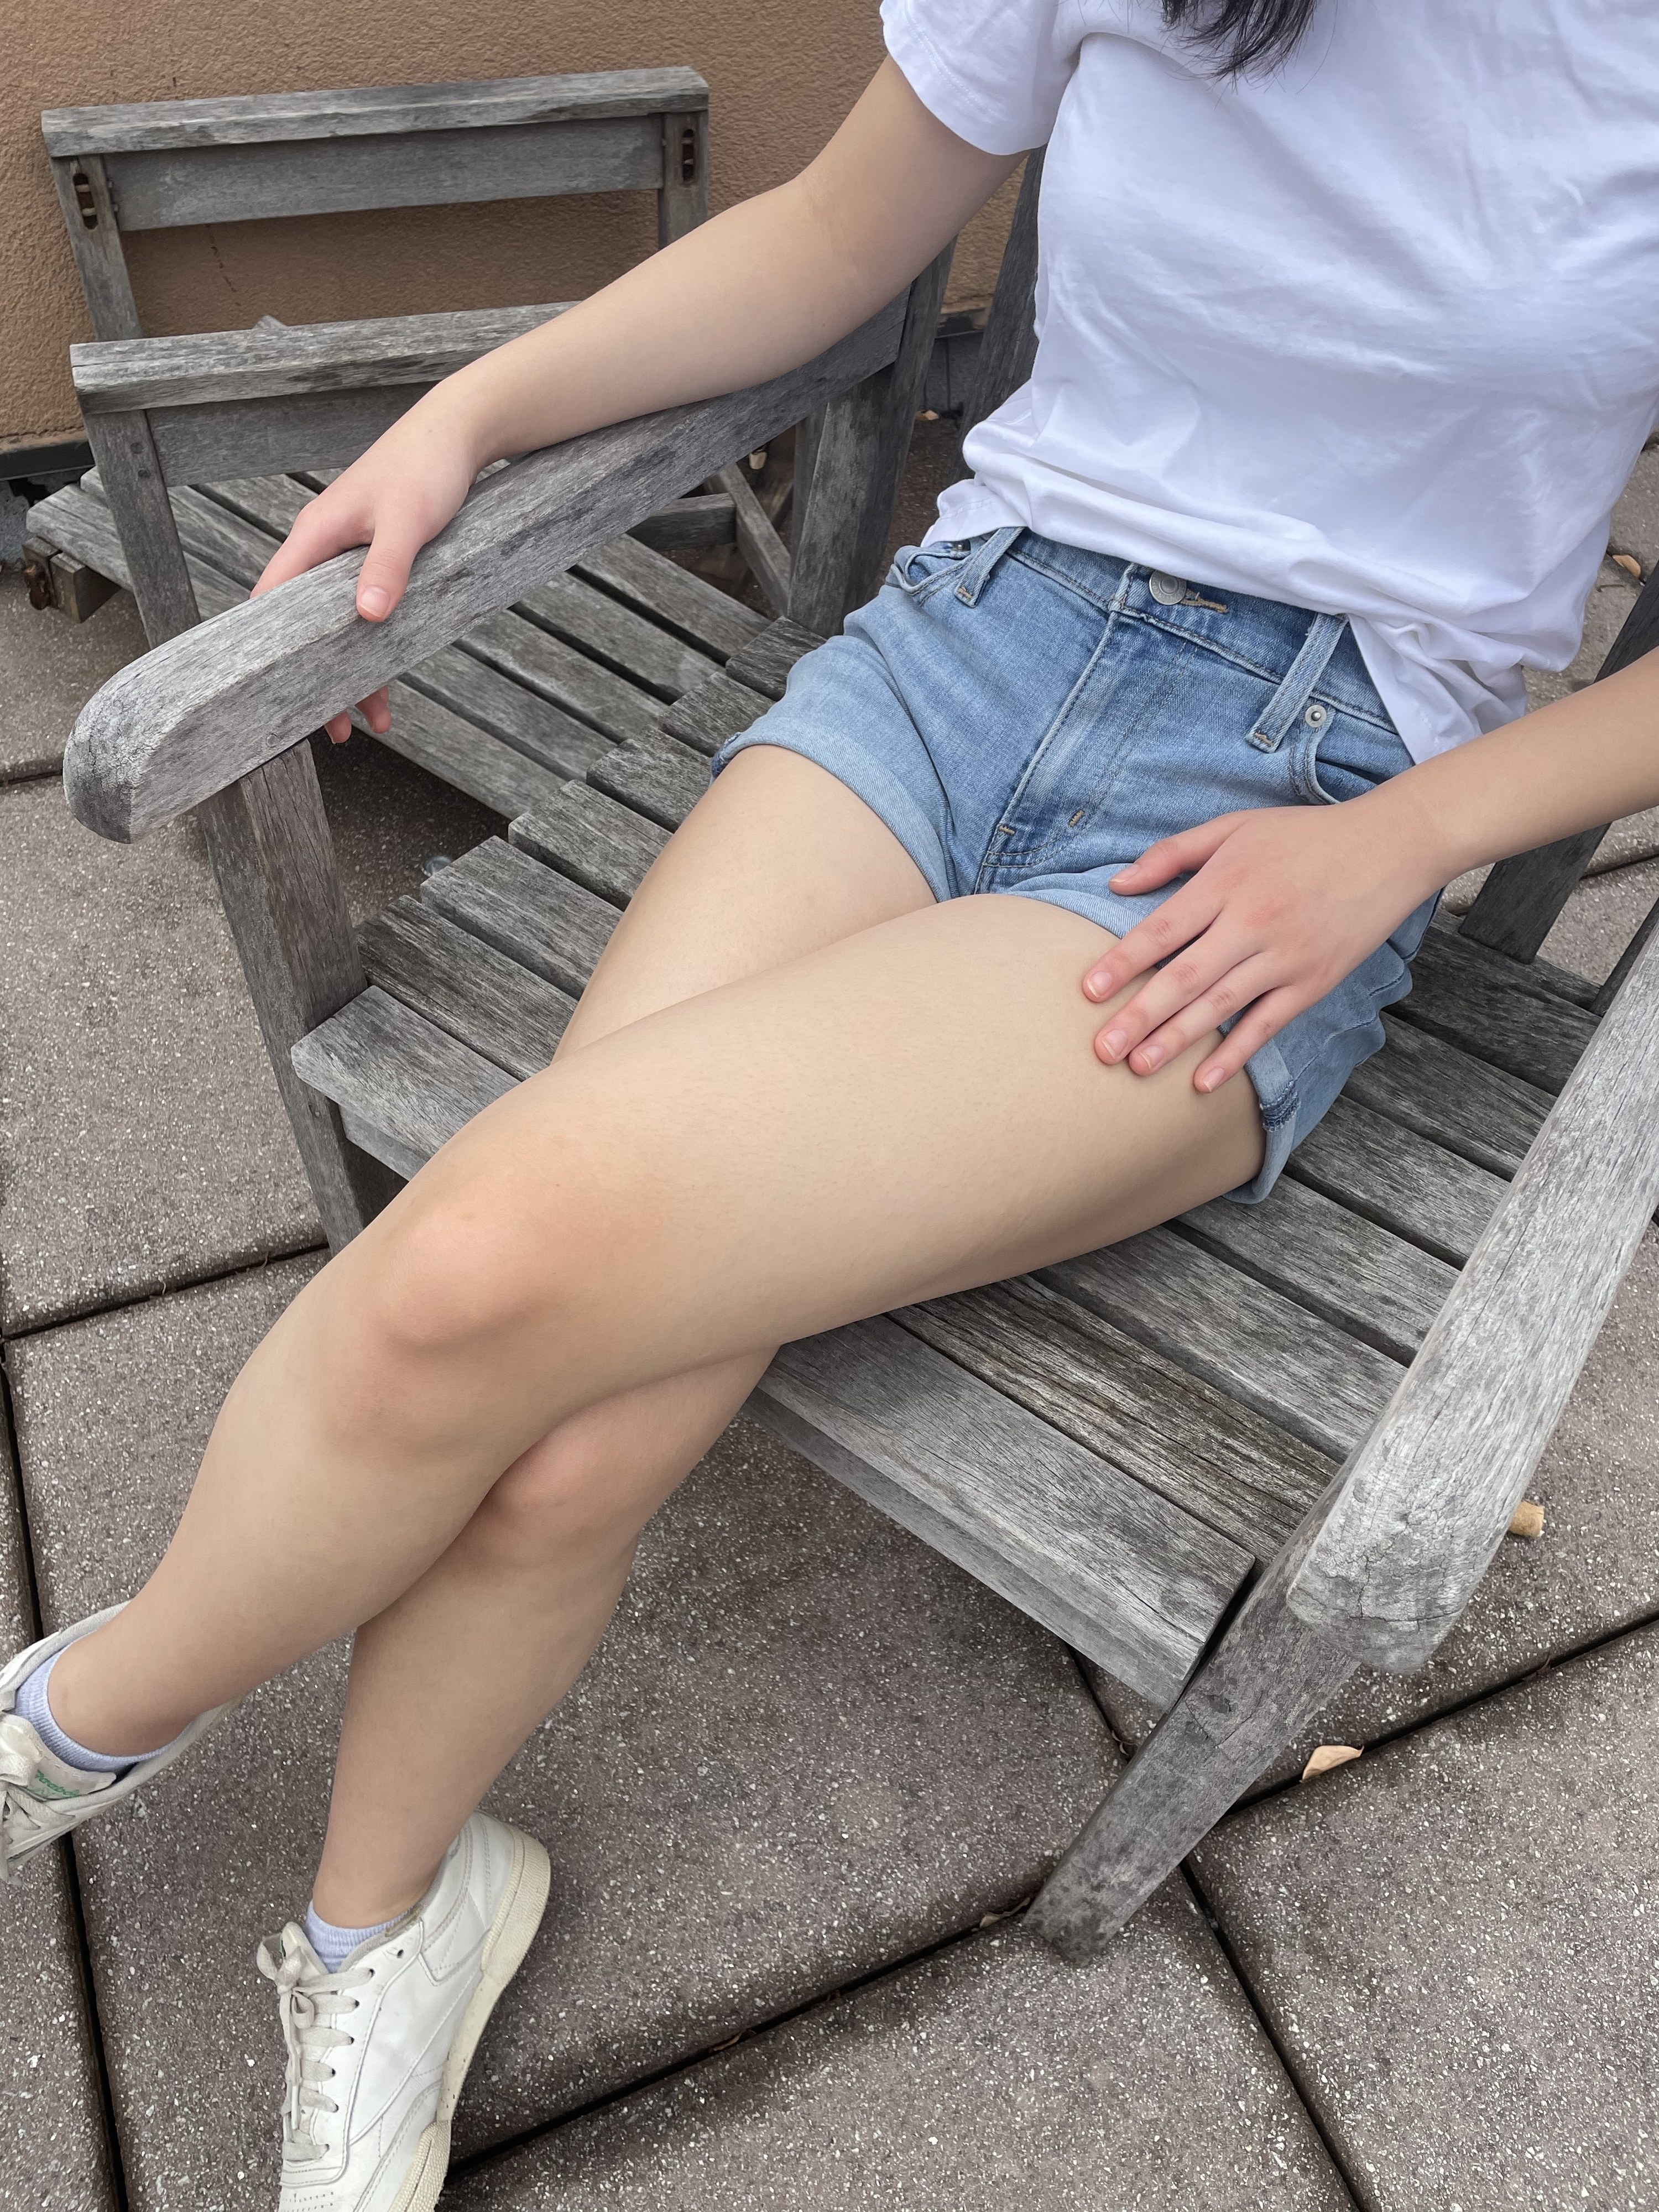 writer photo wearing shorts sitting on a chair outdoors